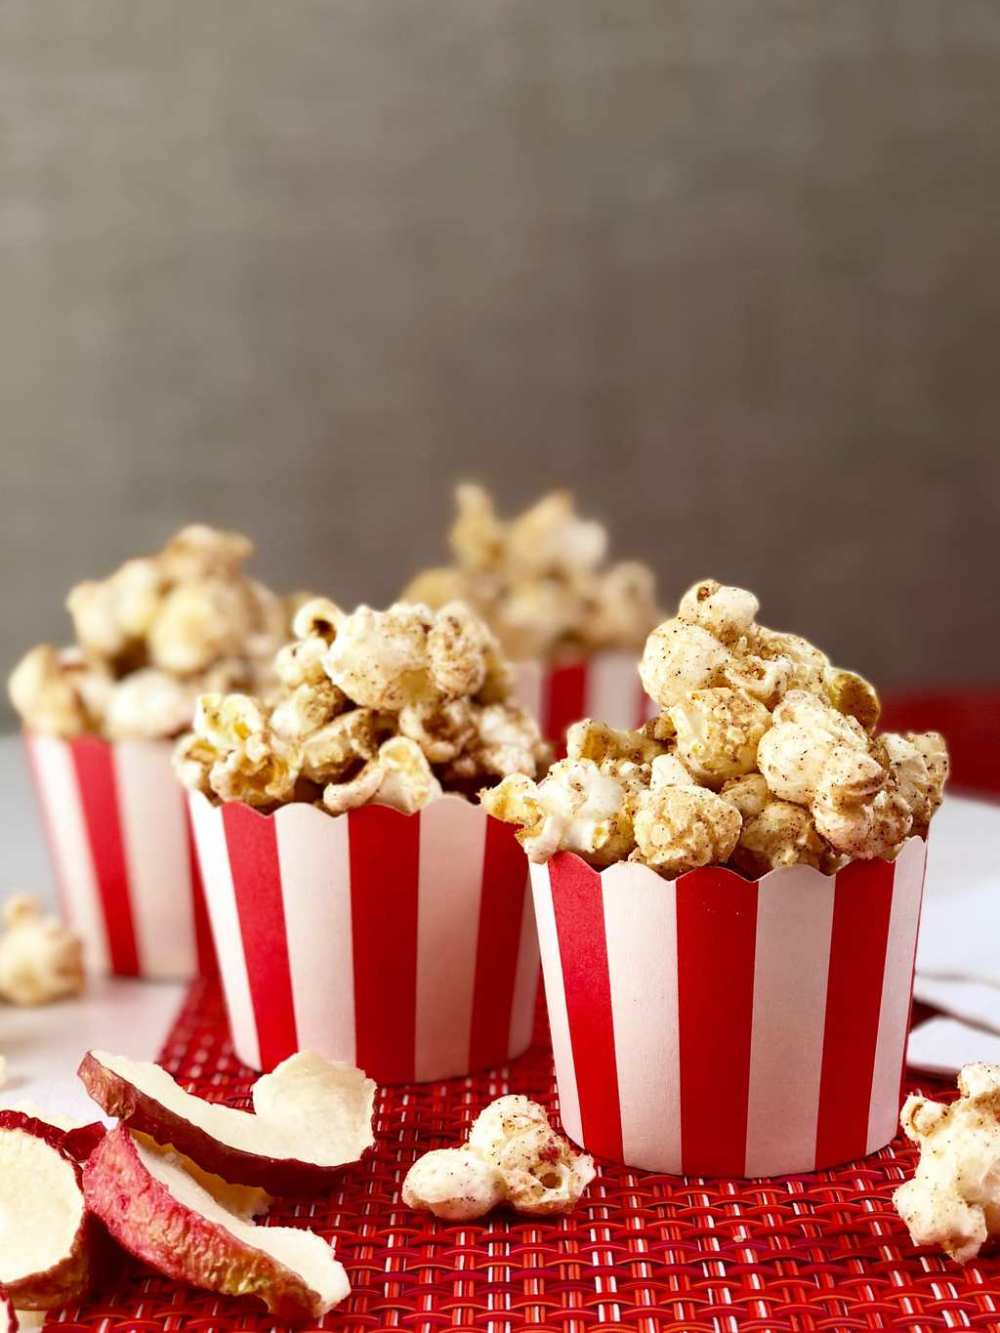 Apple cinnamon popcorn in red and white cups